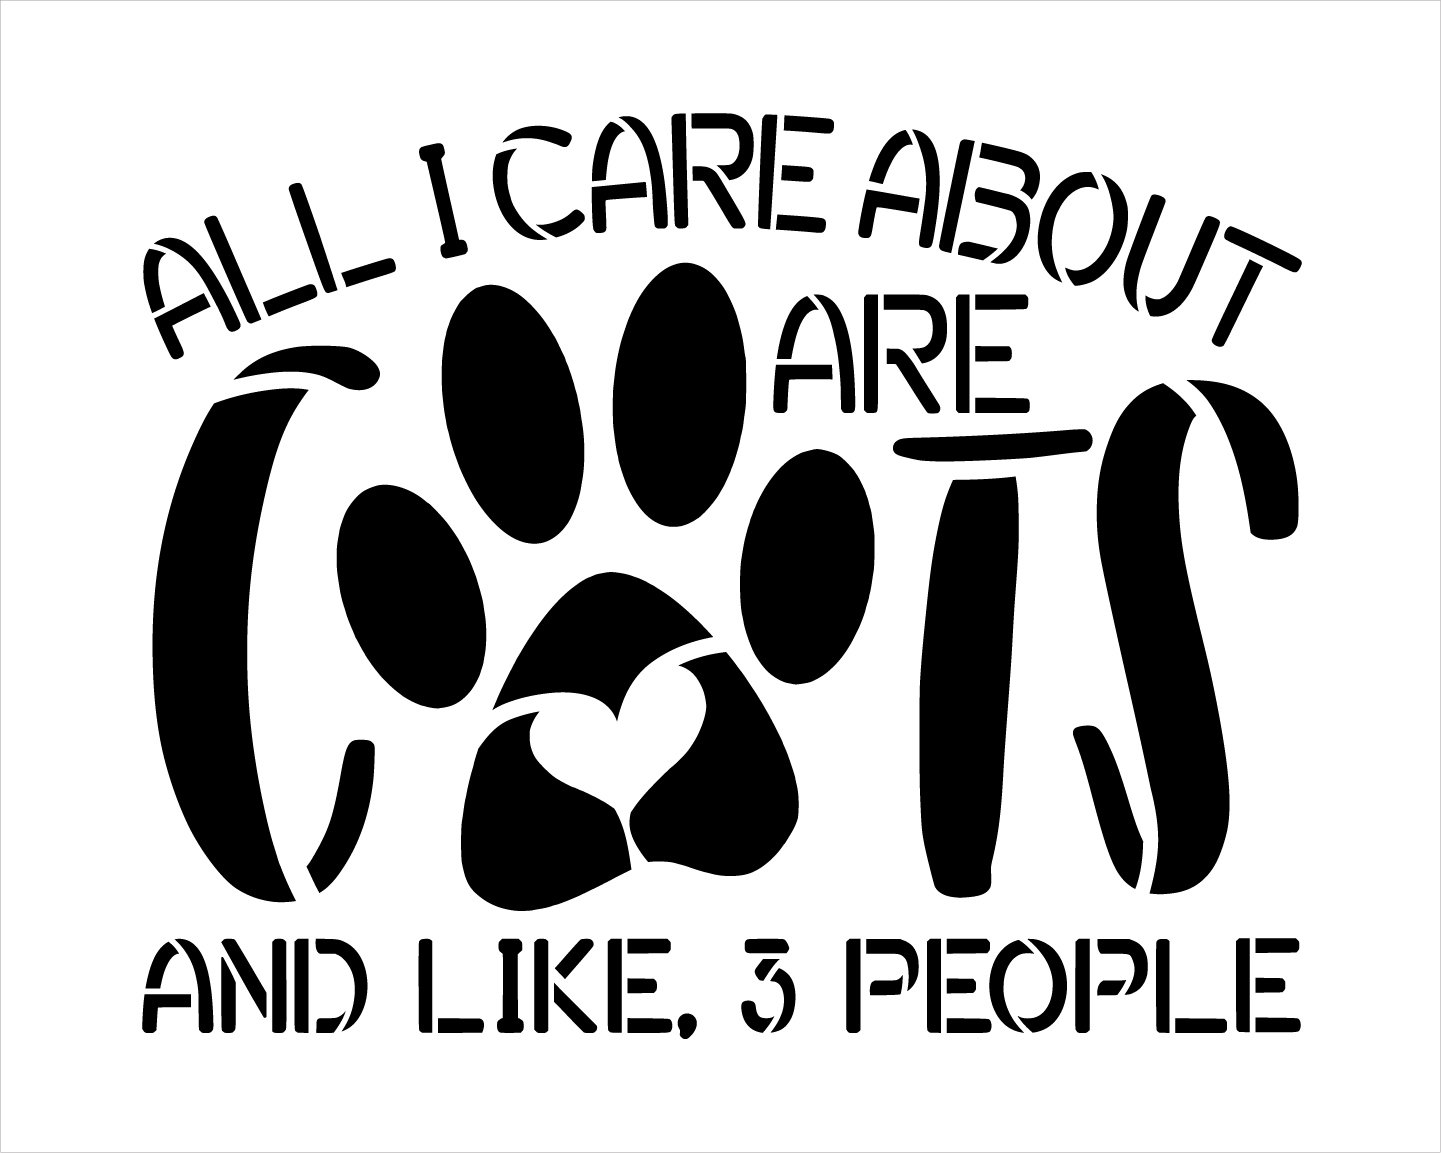 All I Care About are Cats Stencil by StudioR12 | DIY Pet Pawprint Home Decor | Craft & Paint Wood Sign | Reusable Mylar Template | Select Size